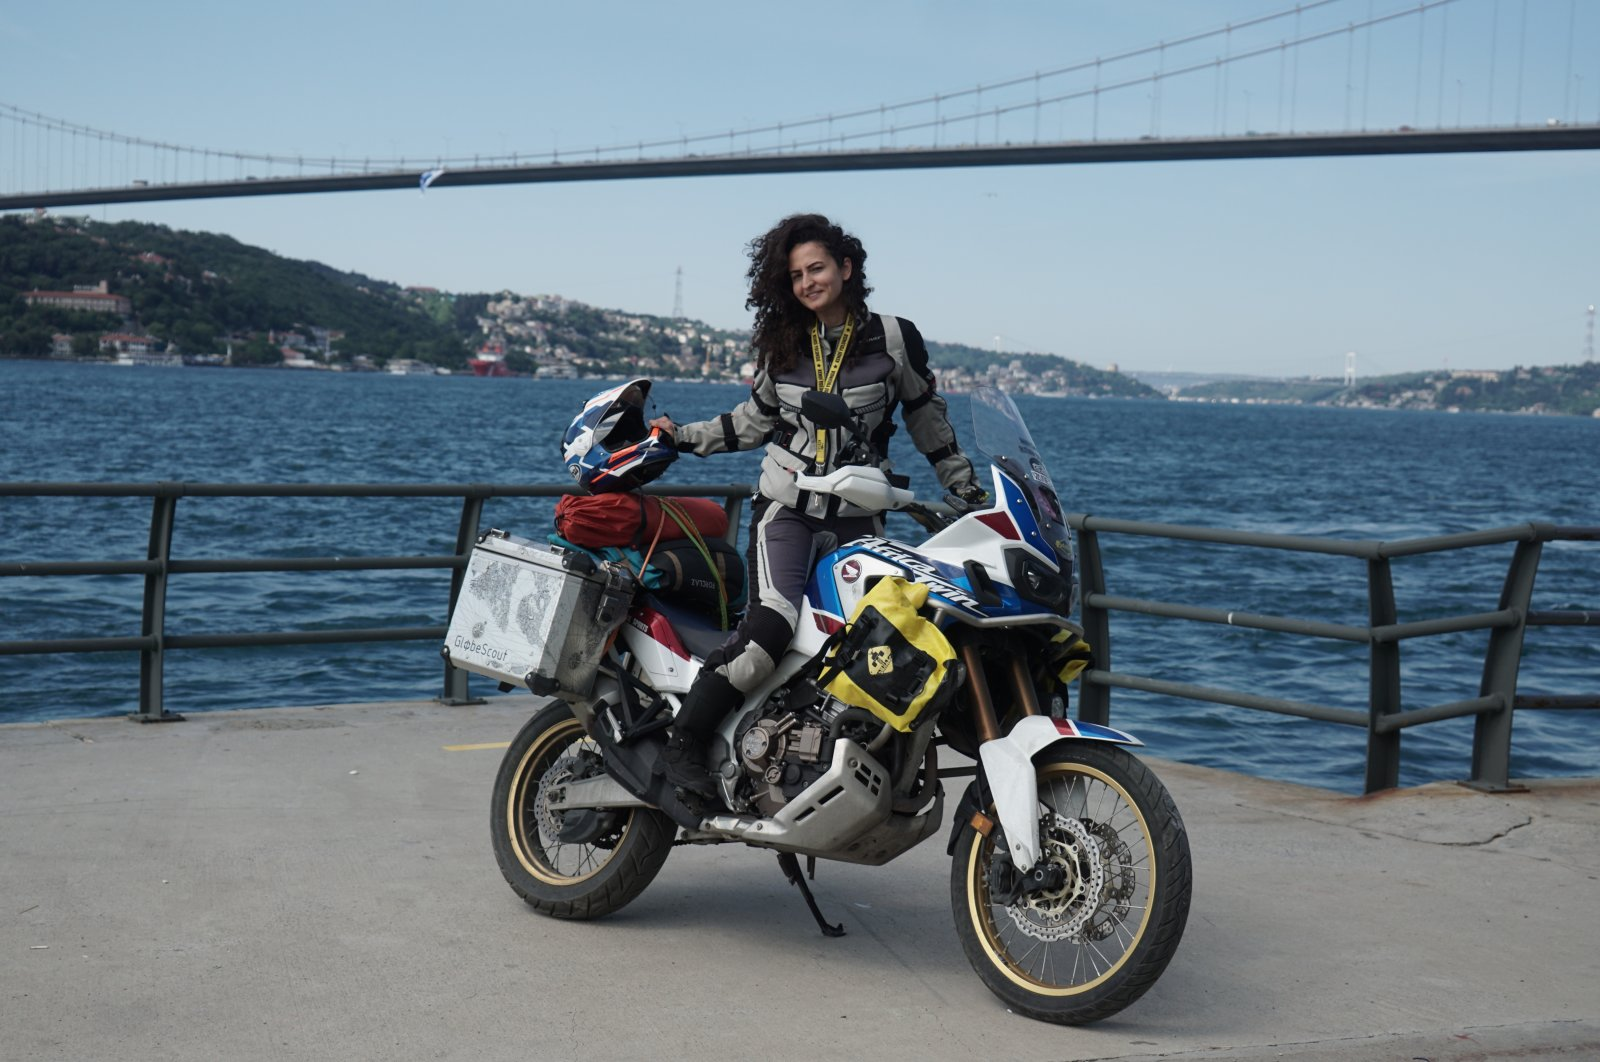 Asil Özbay poses with her motorcycle, in Istanbul, Turkey, June 21, 2021. (AA PHOTO)